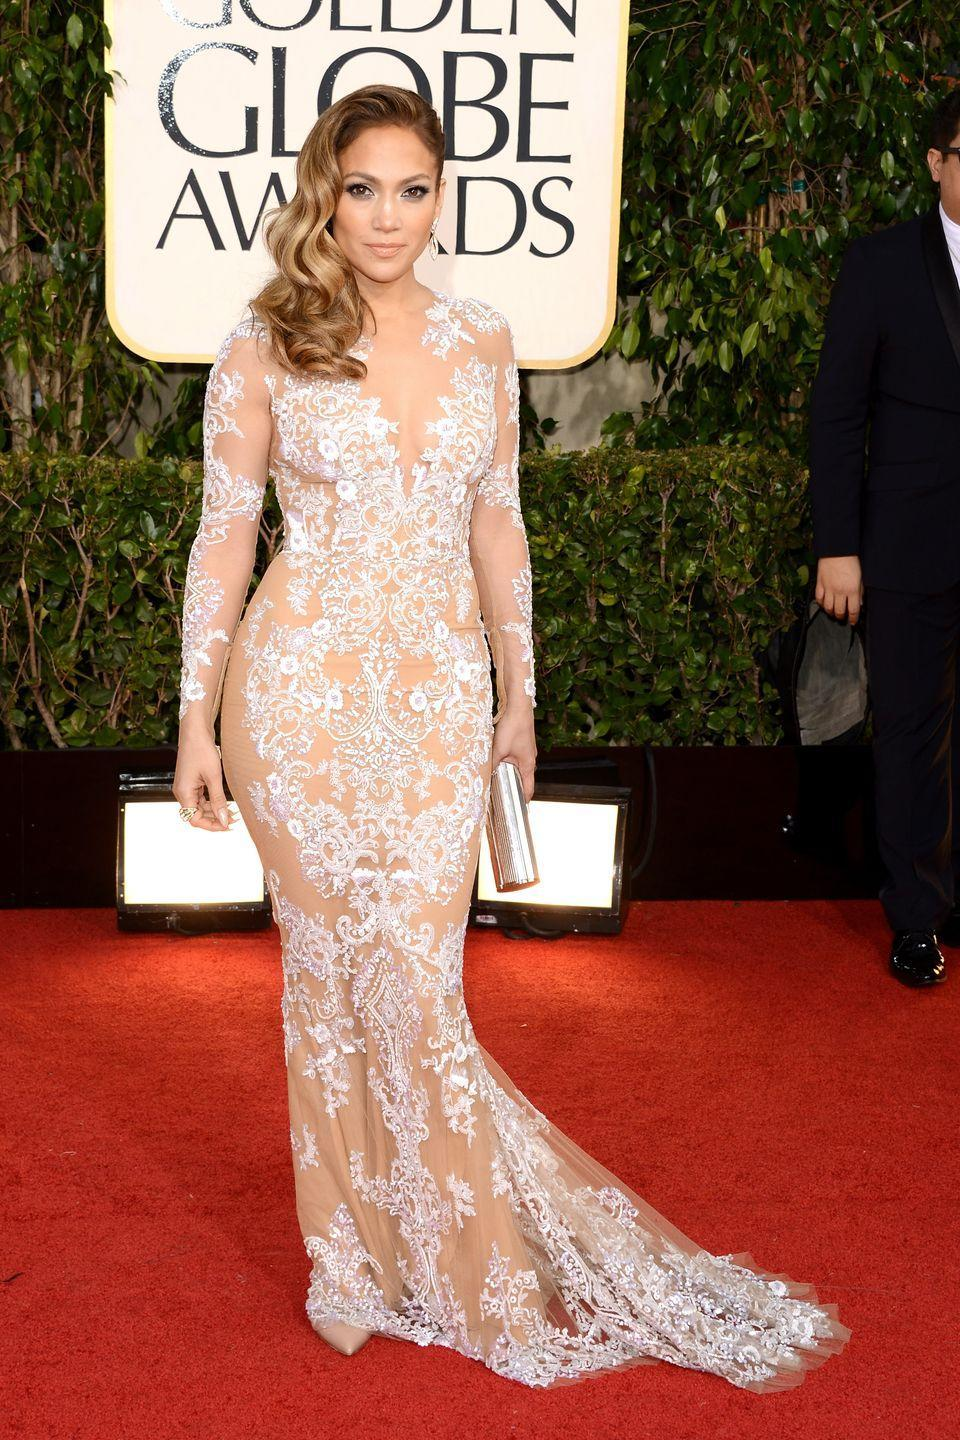 <p>The singer wore a nude sheer gown with a white lace appliqué pattern by Zuhair Murad.</p>